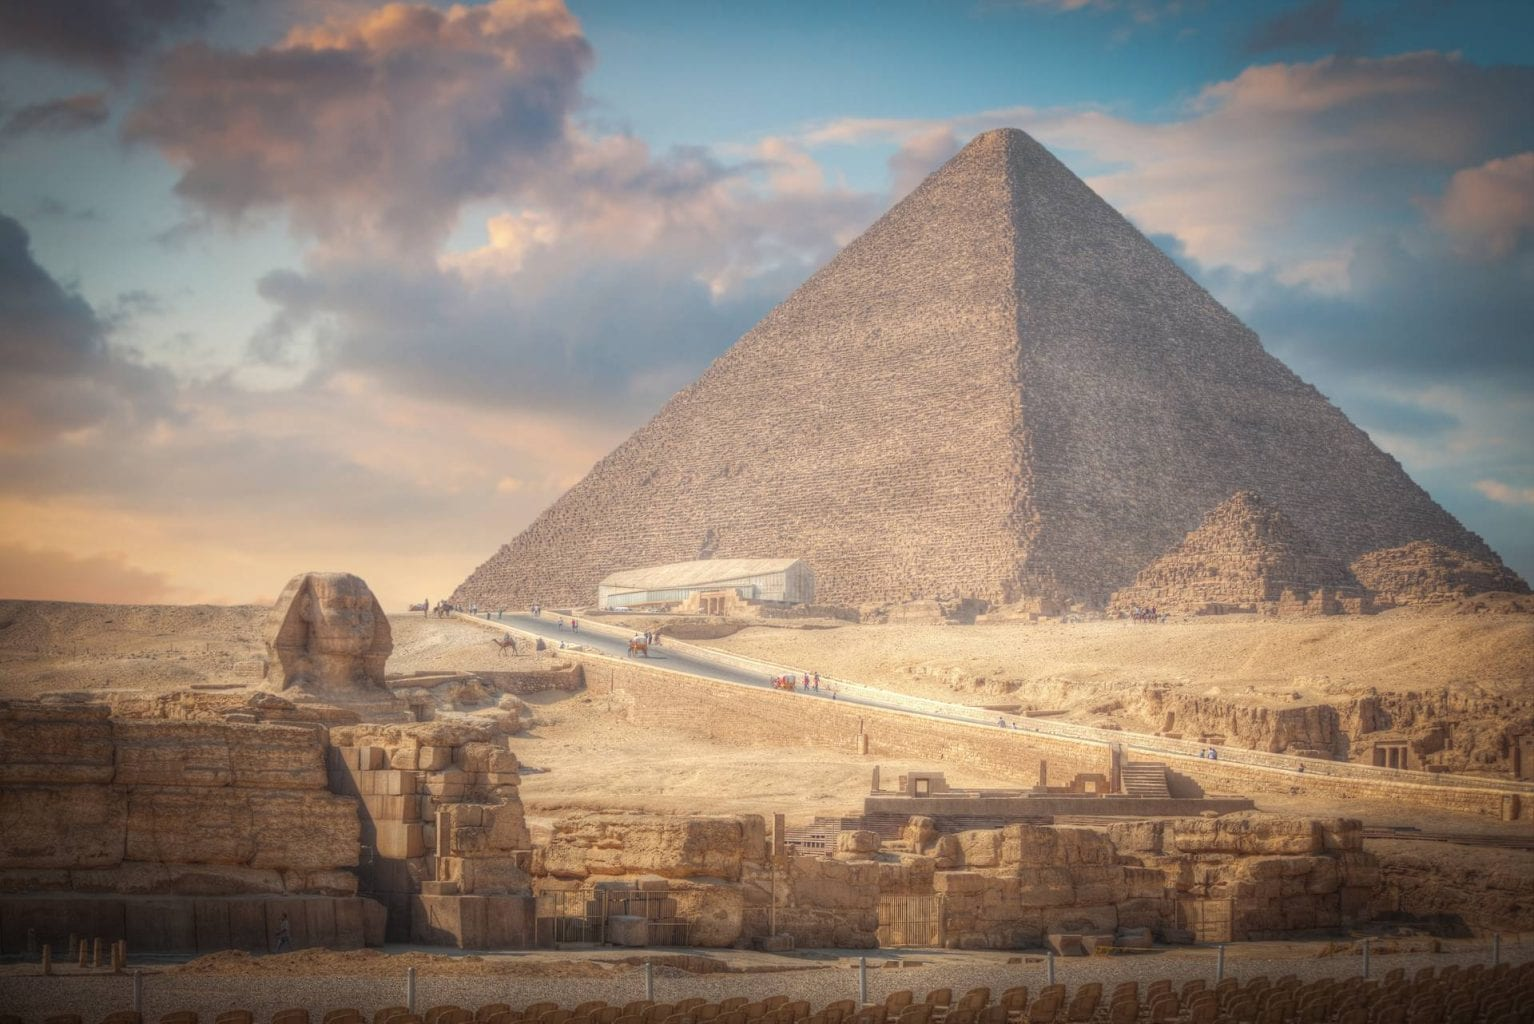 The most famous monument in the world - the Great Pyramid of Giza.